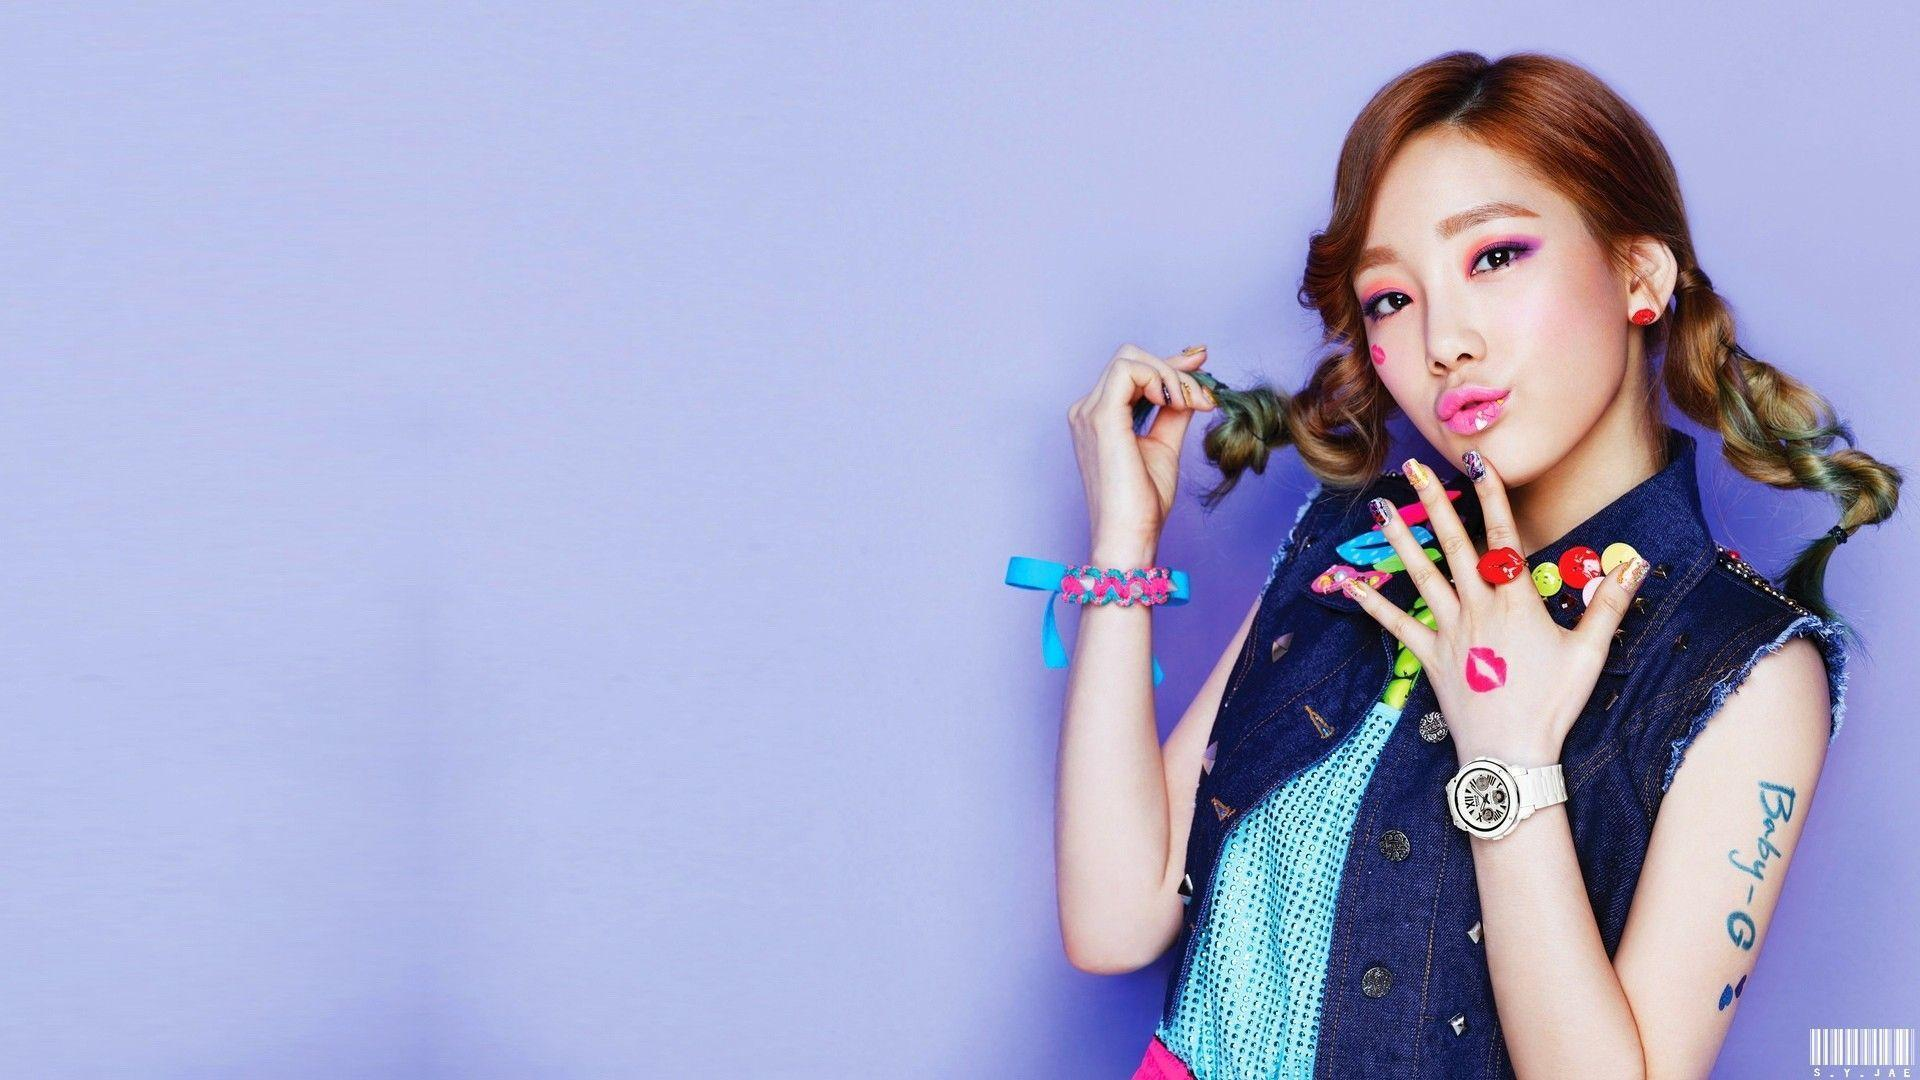 Kim Taeyeon Wallpapers 2015 - Wallpaper Cave